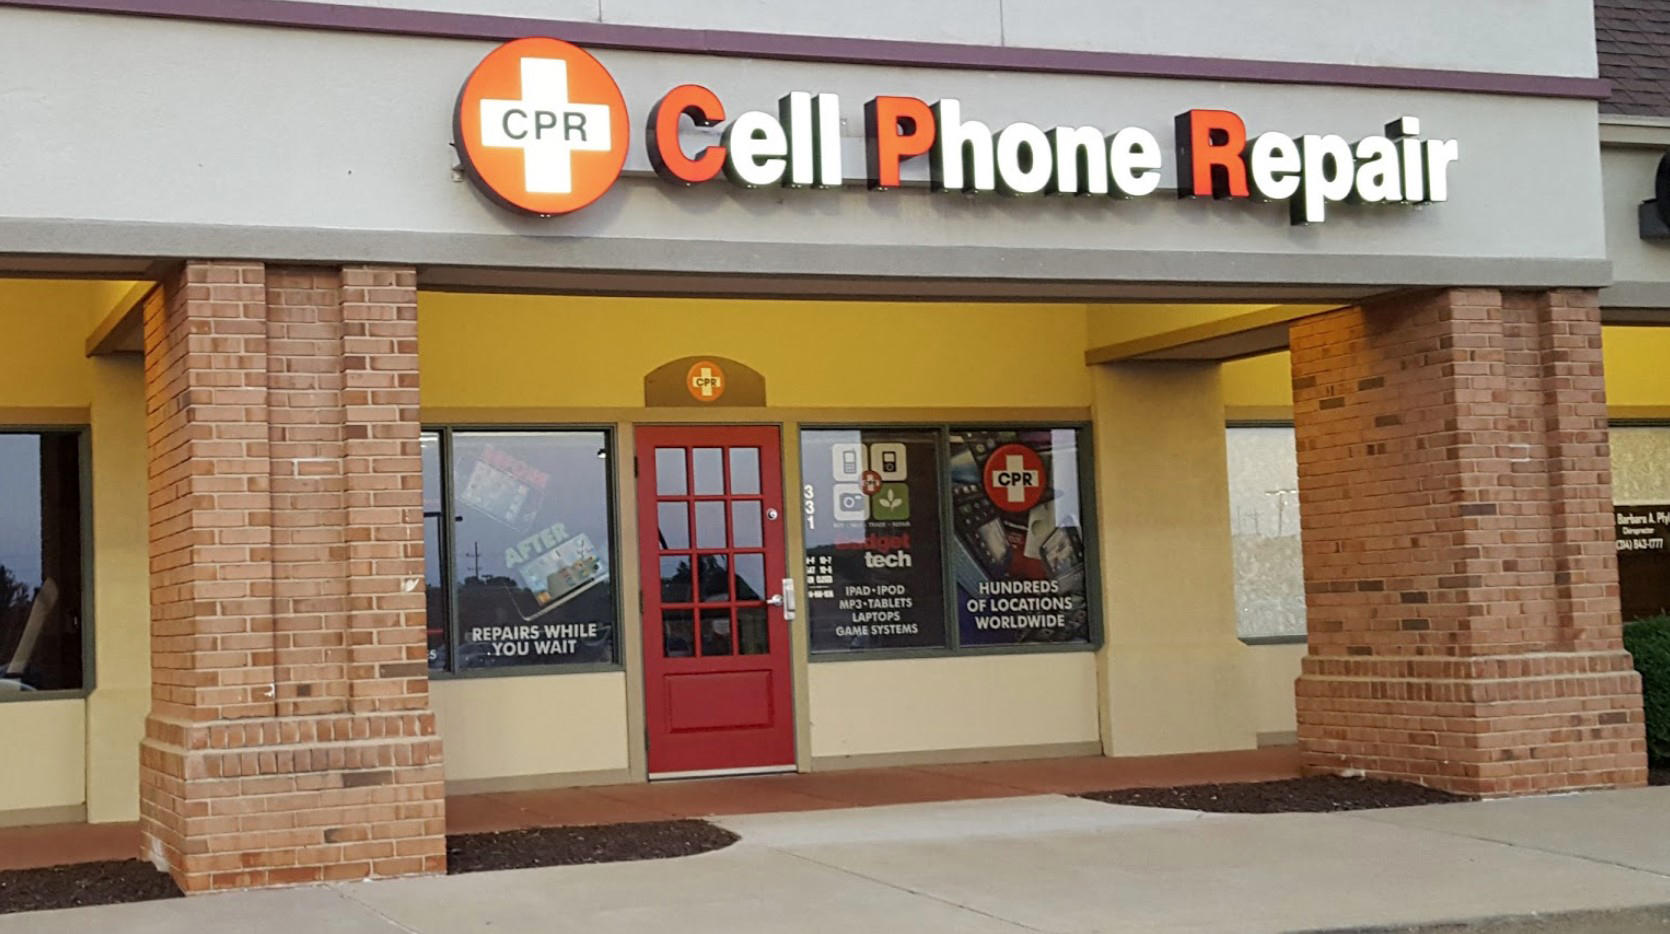 CPR Cell Phone Repair St. Louis - Crestwood